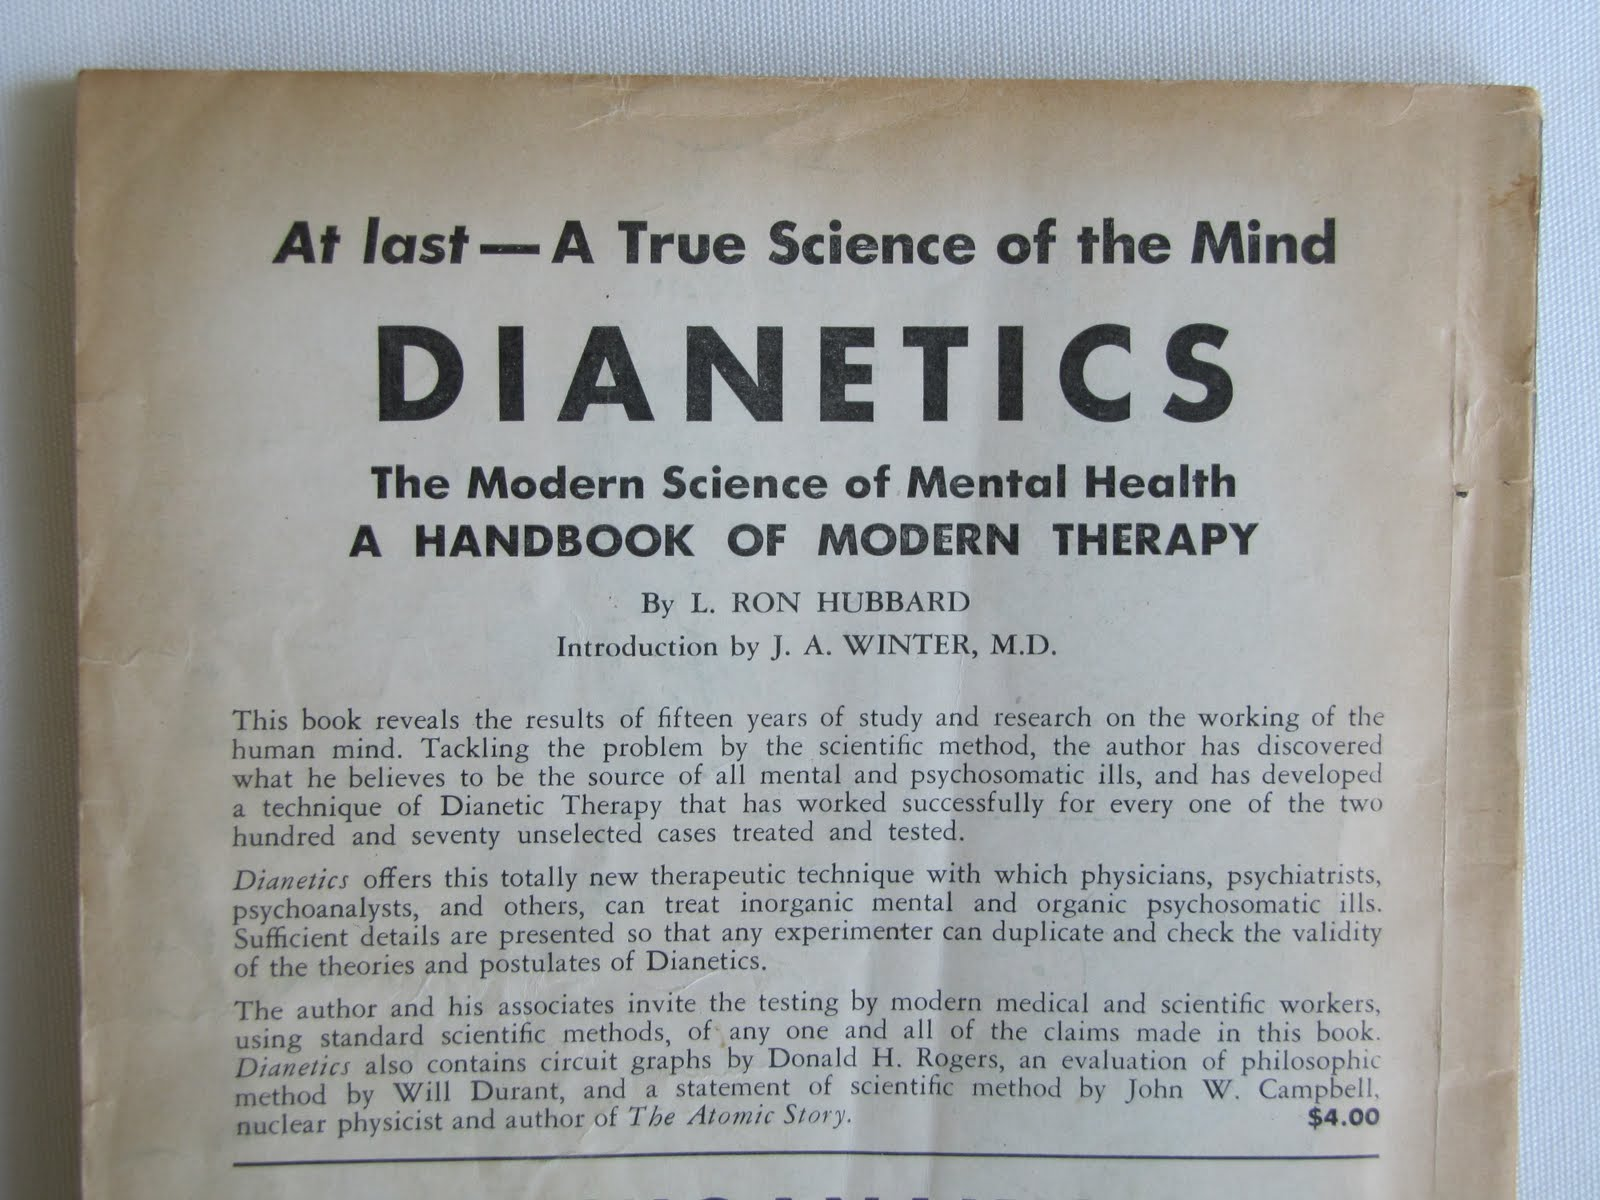 Back page advertisement for Dianetics.